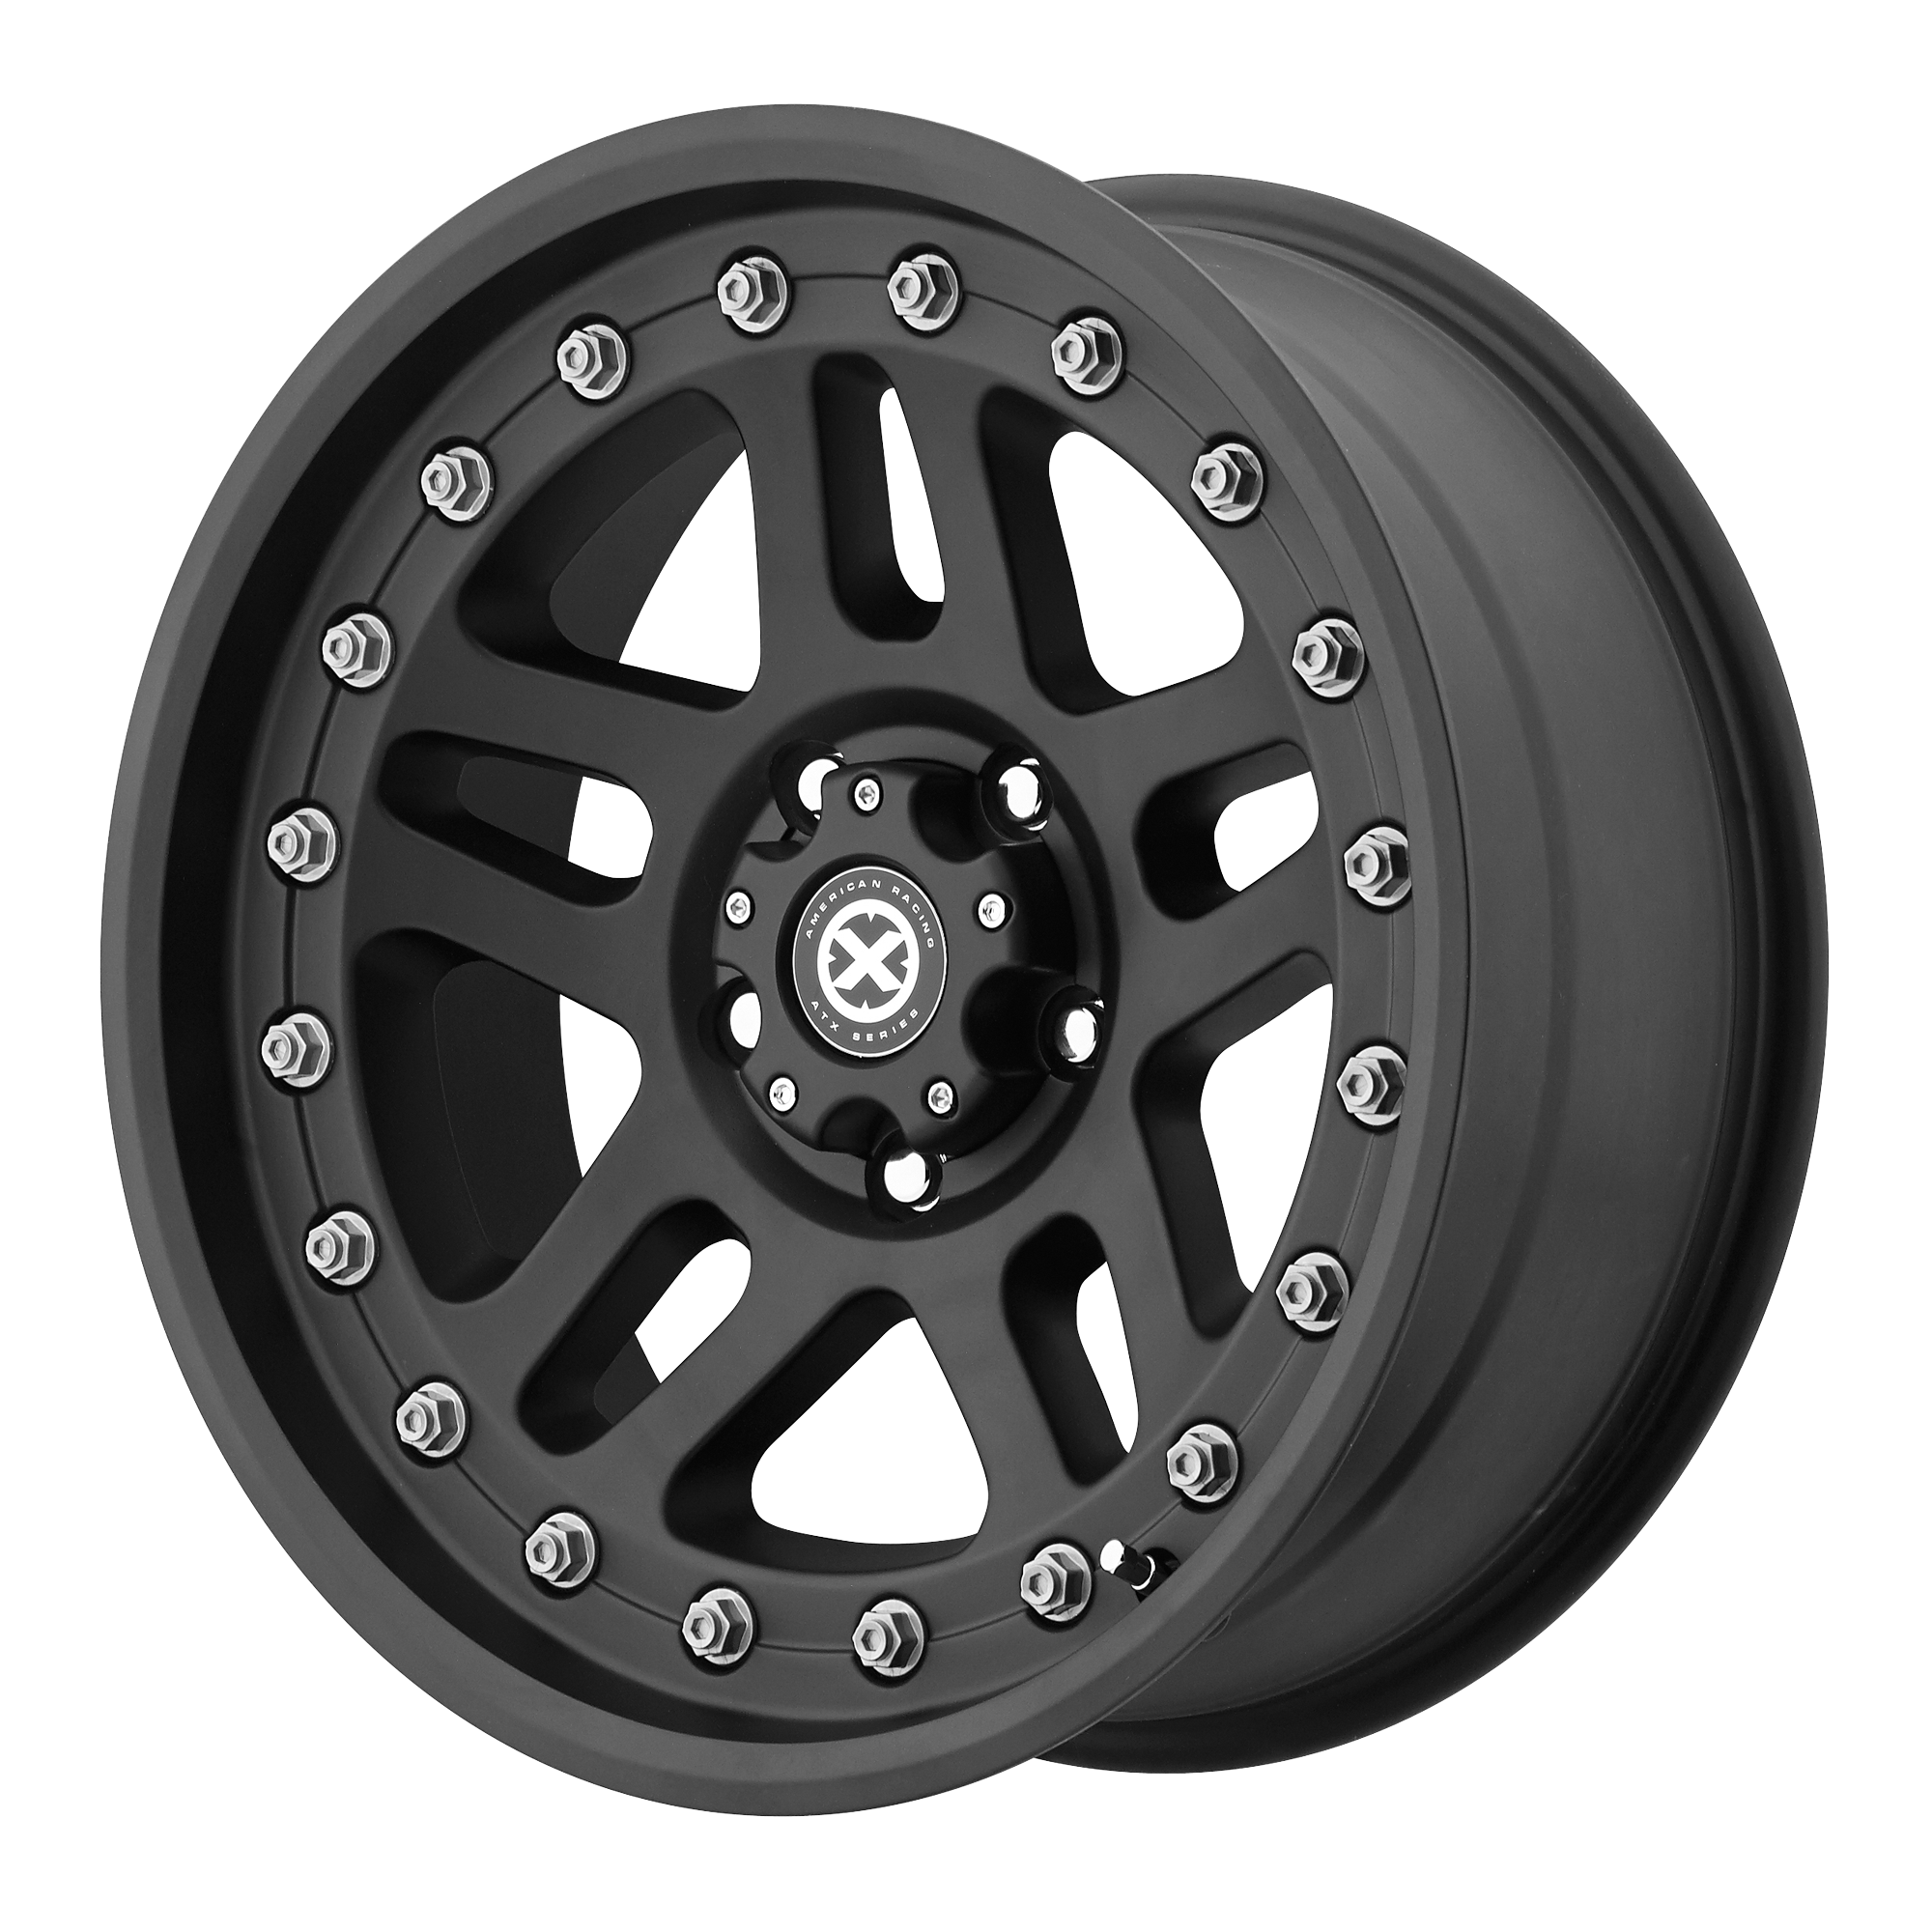 ATX Series Offroad Wheels CORNICE Textured Black